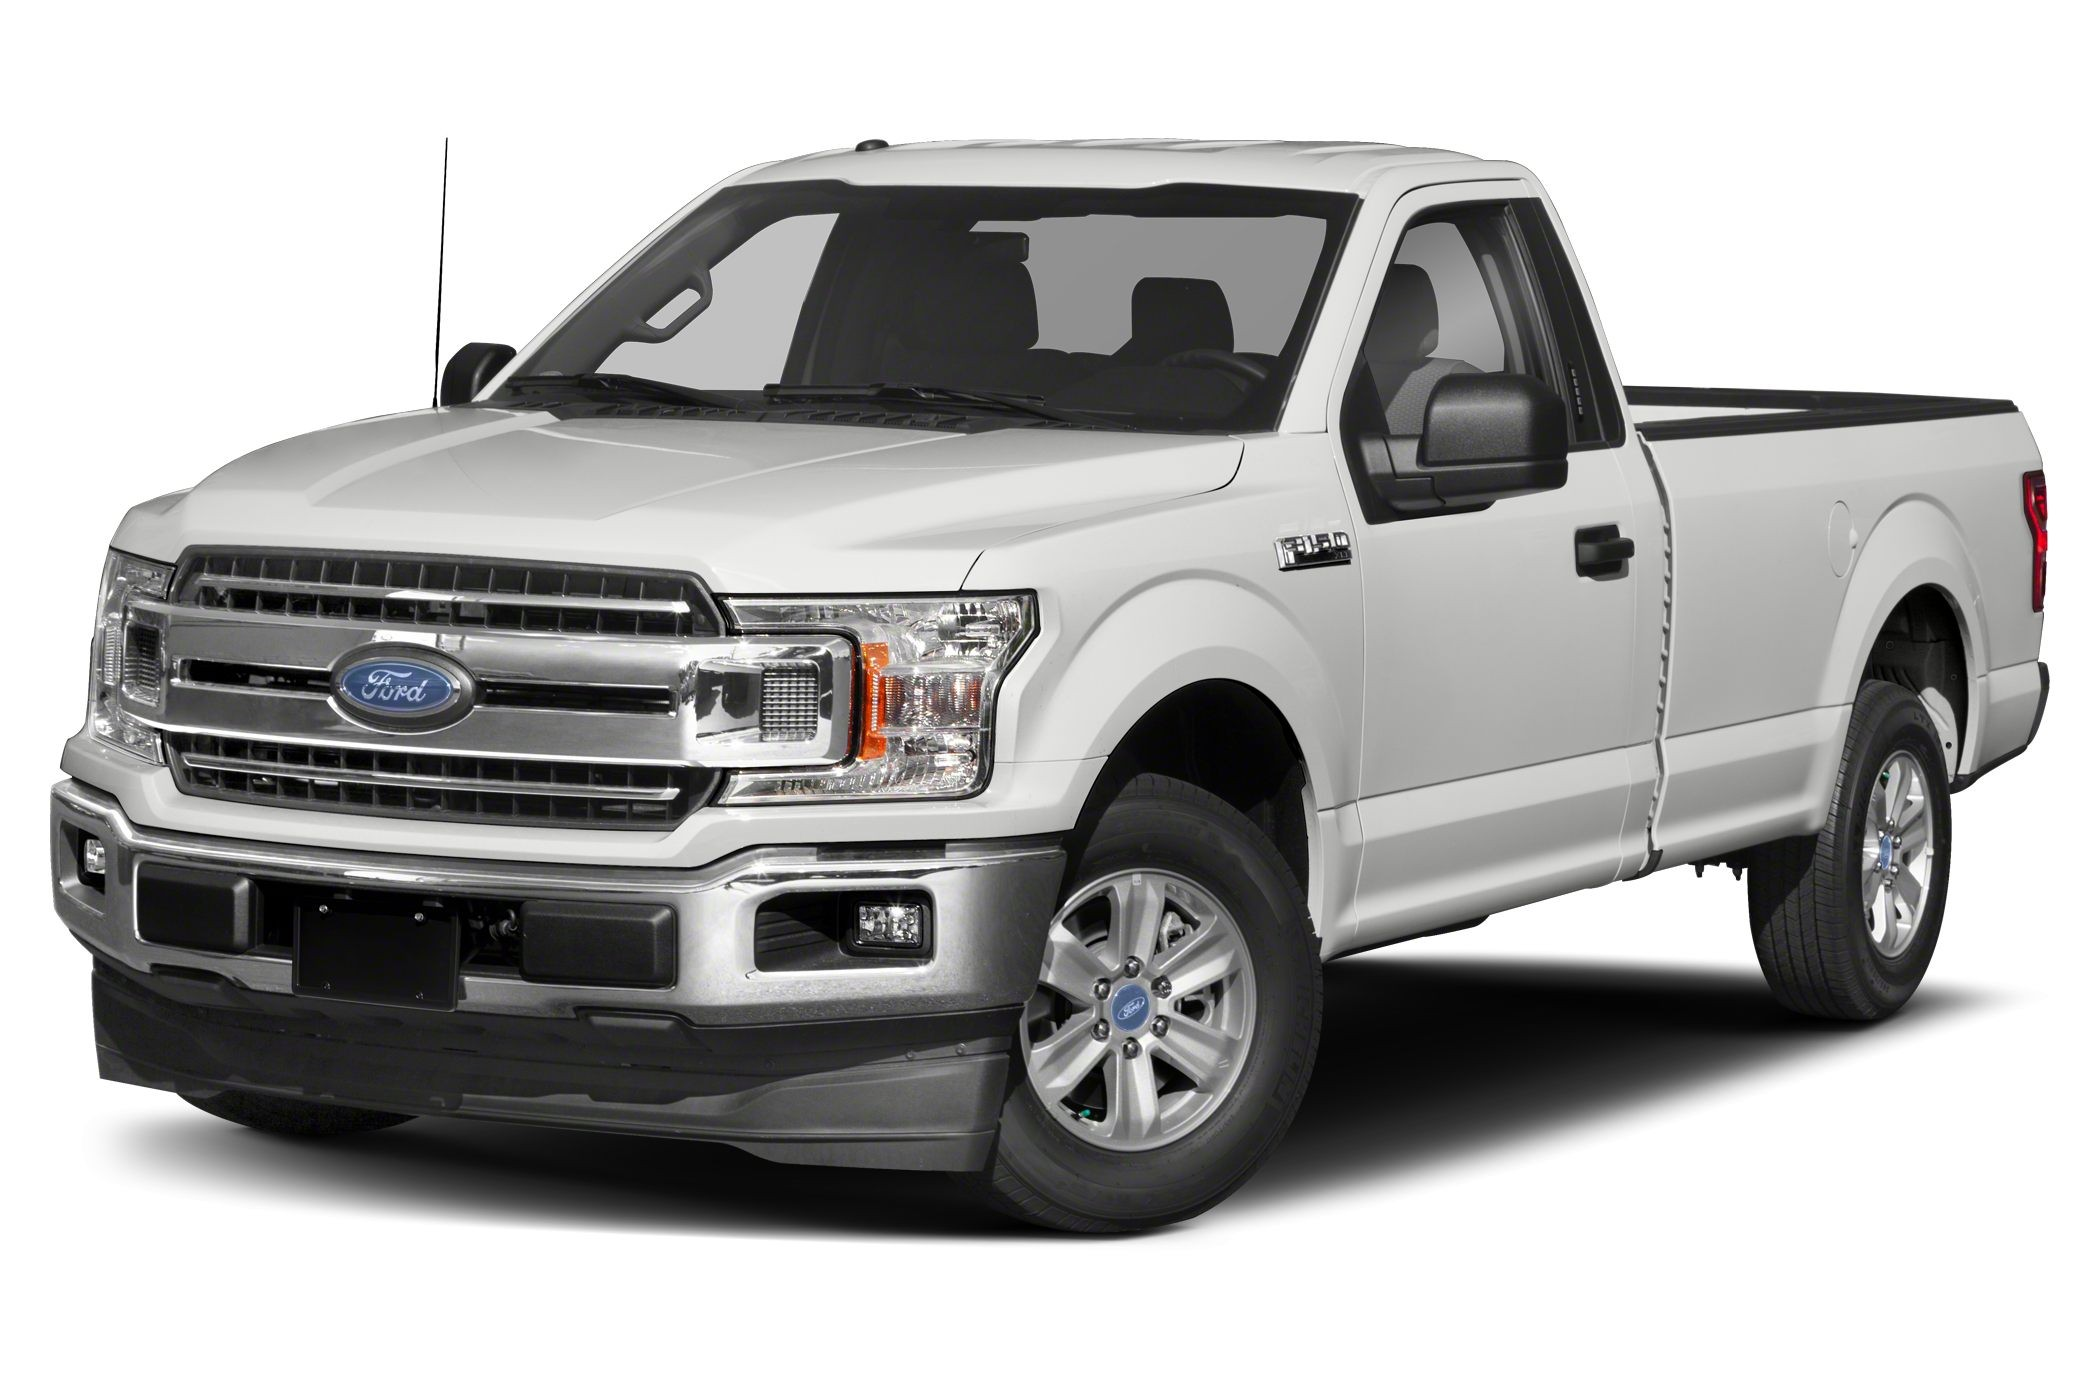 2018 Ford F 150 XL 4x4 Regular Cab Styleside 8 ft box 141 in WB Pricing and Options